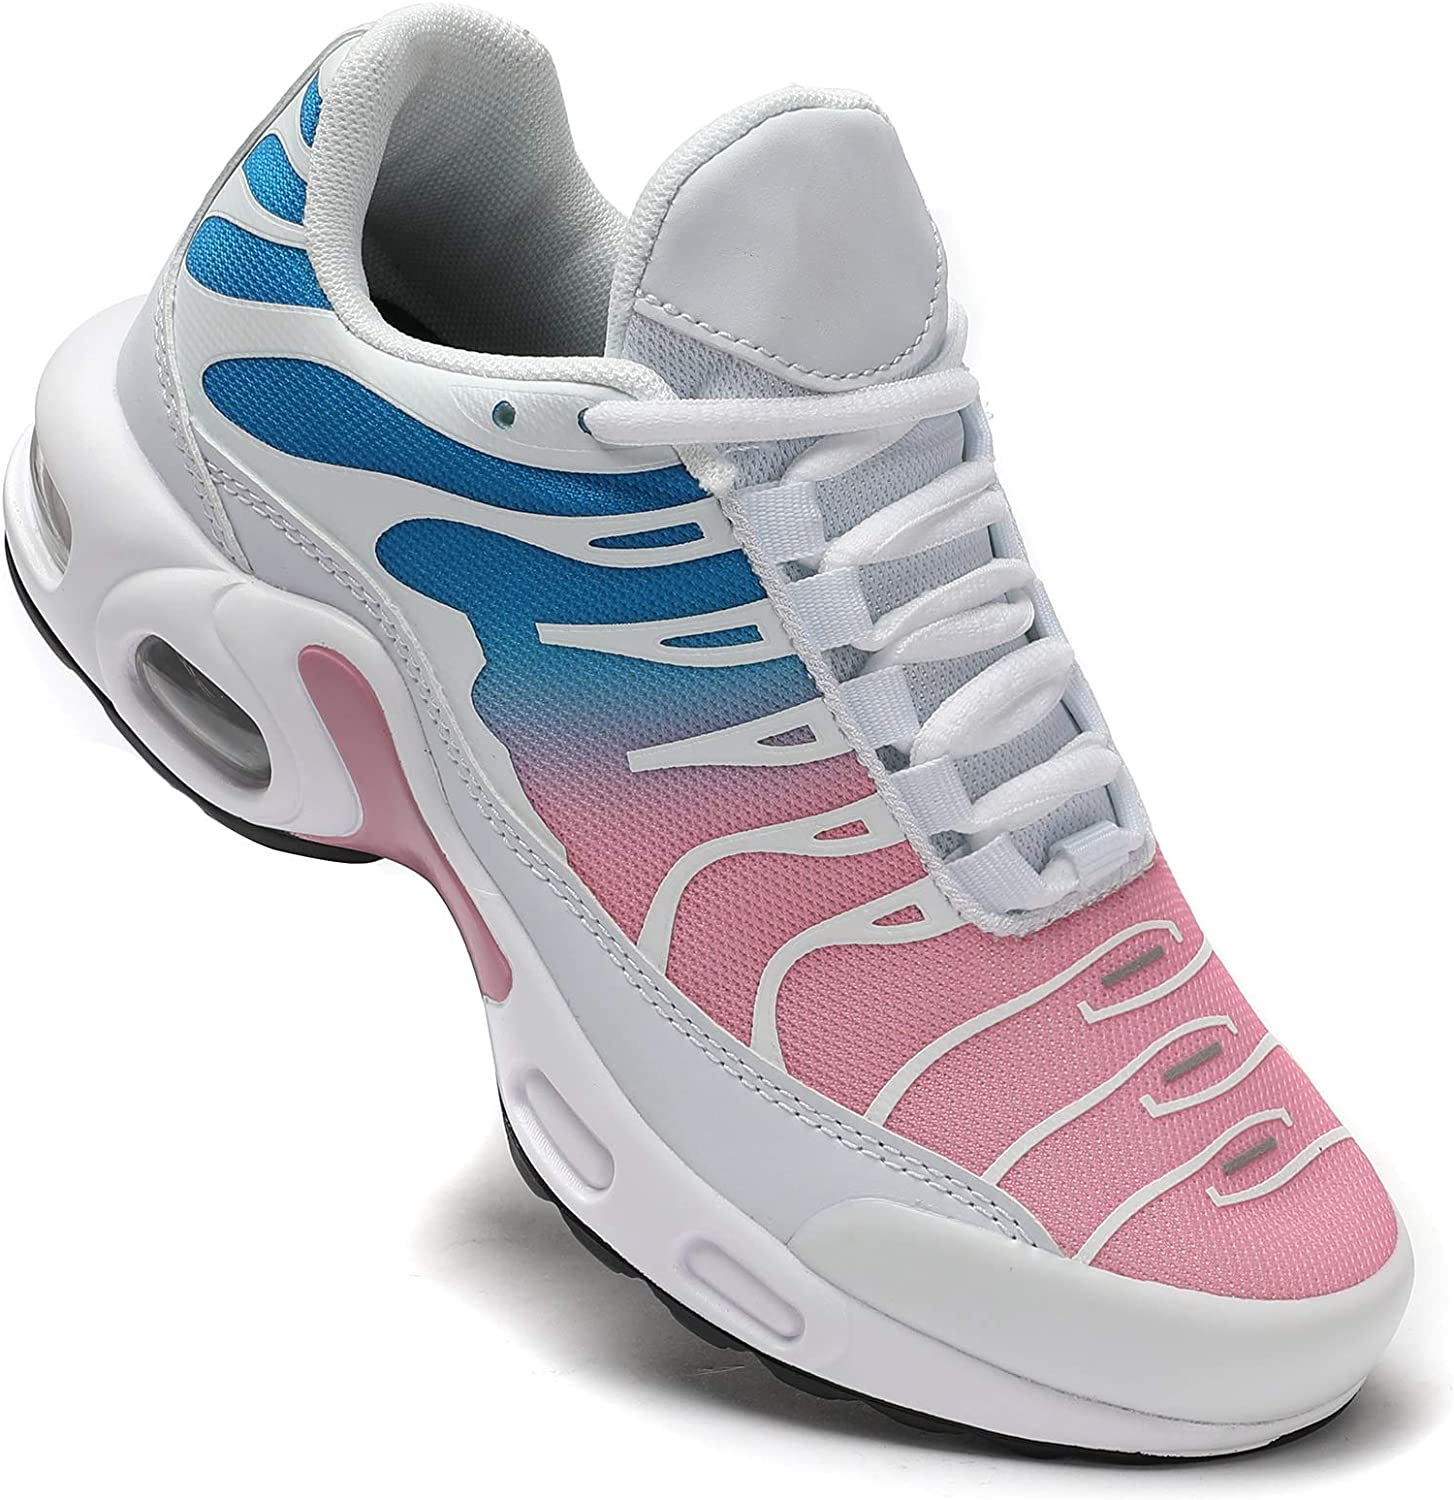 Boys Girls Fashion Sneakers Air Running Elegant Little for Big Kid Shoes List price